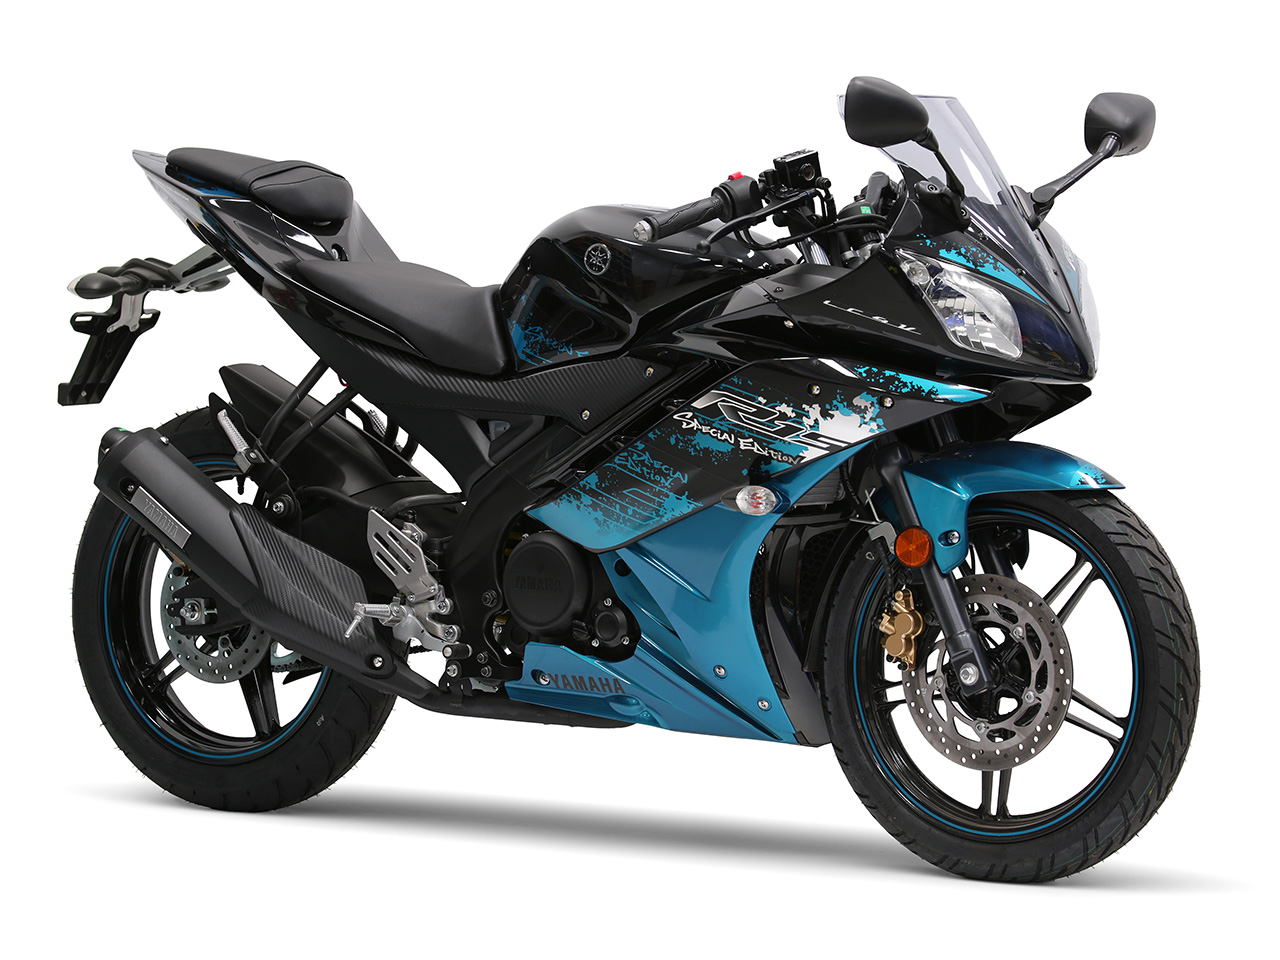 Yamaha YZF-R15 in midnight black colour00